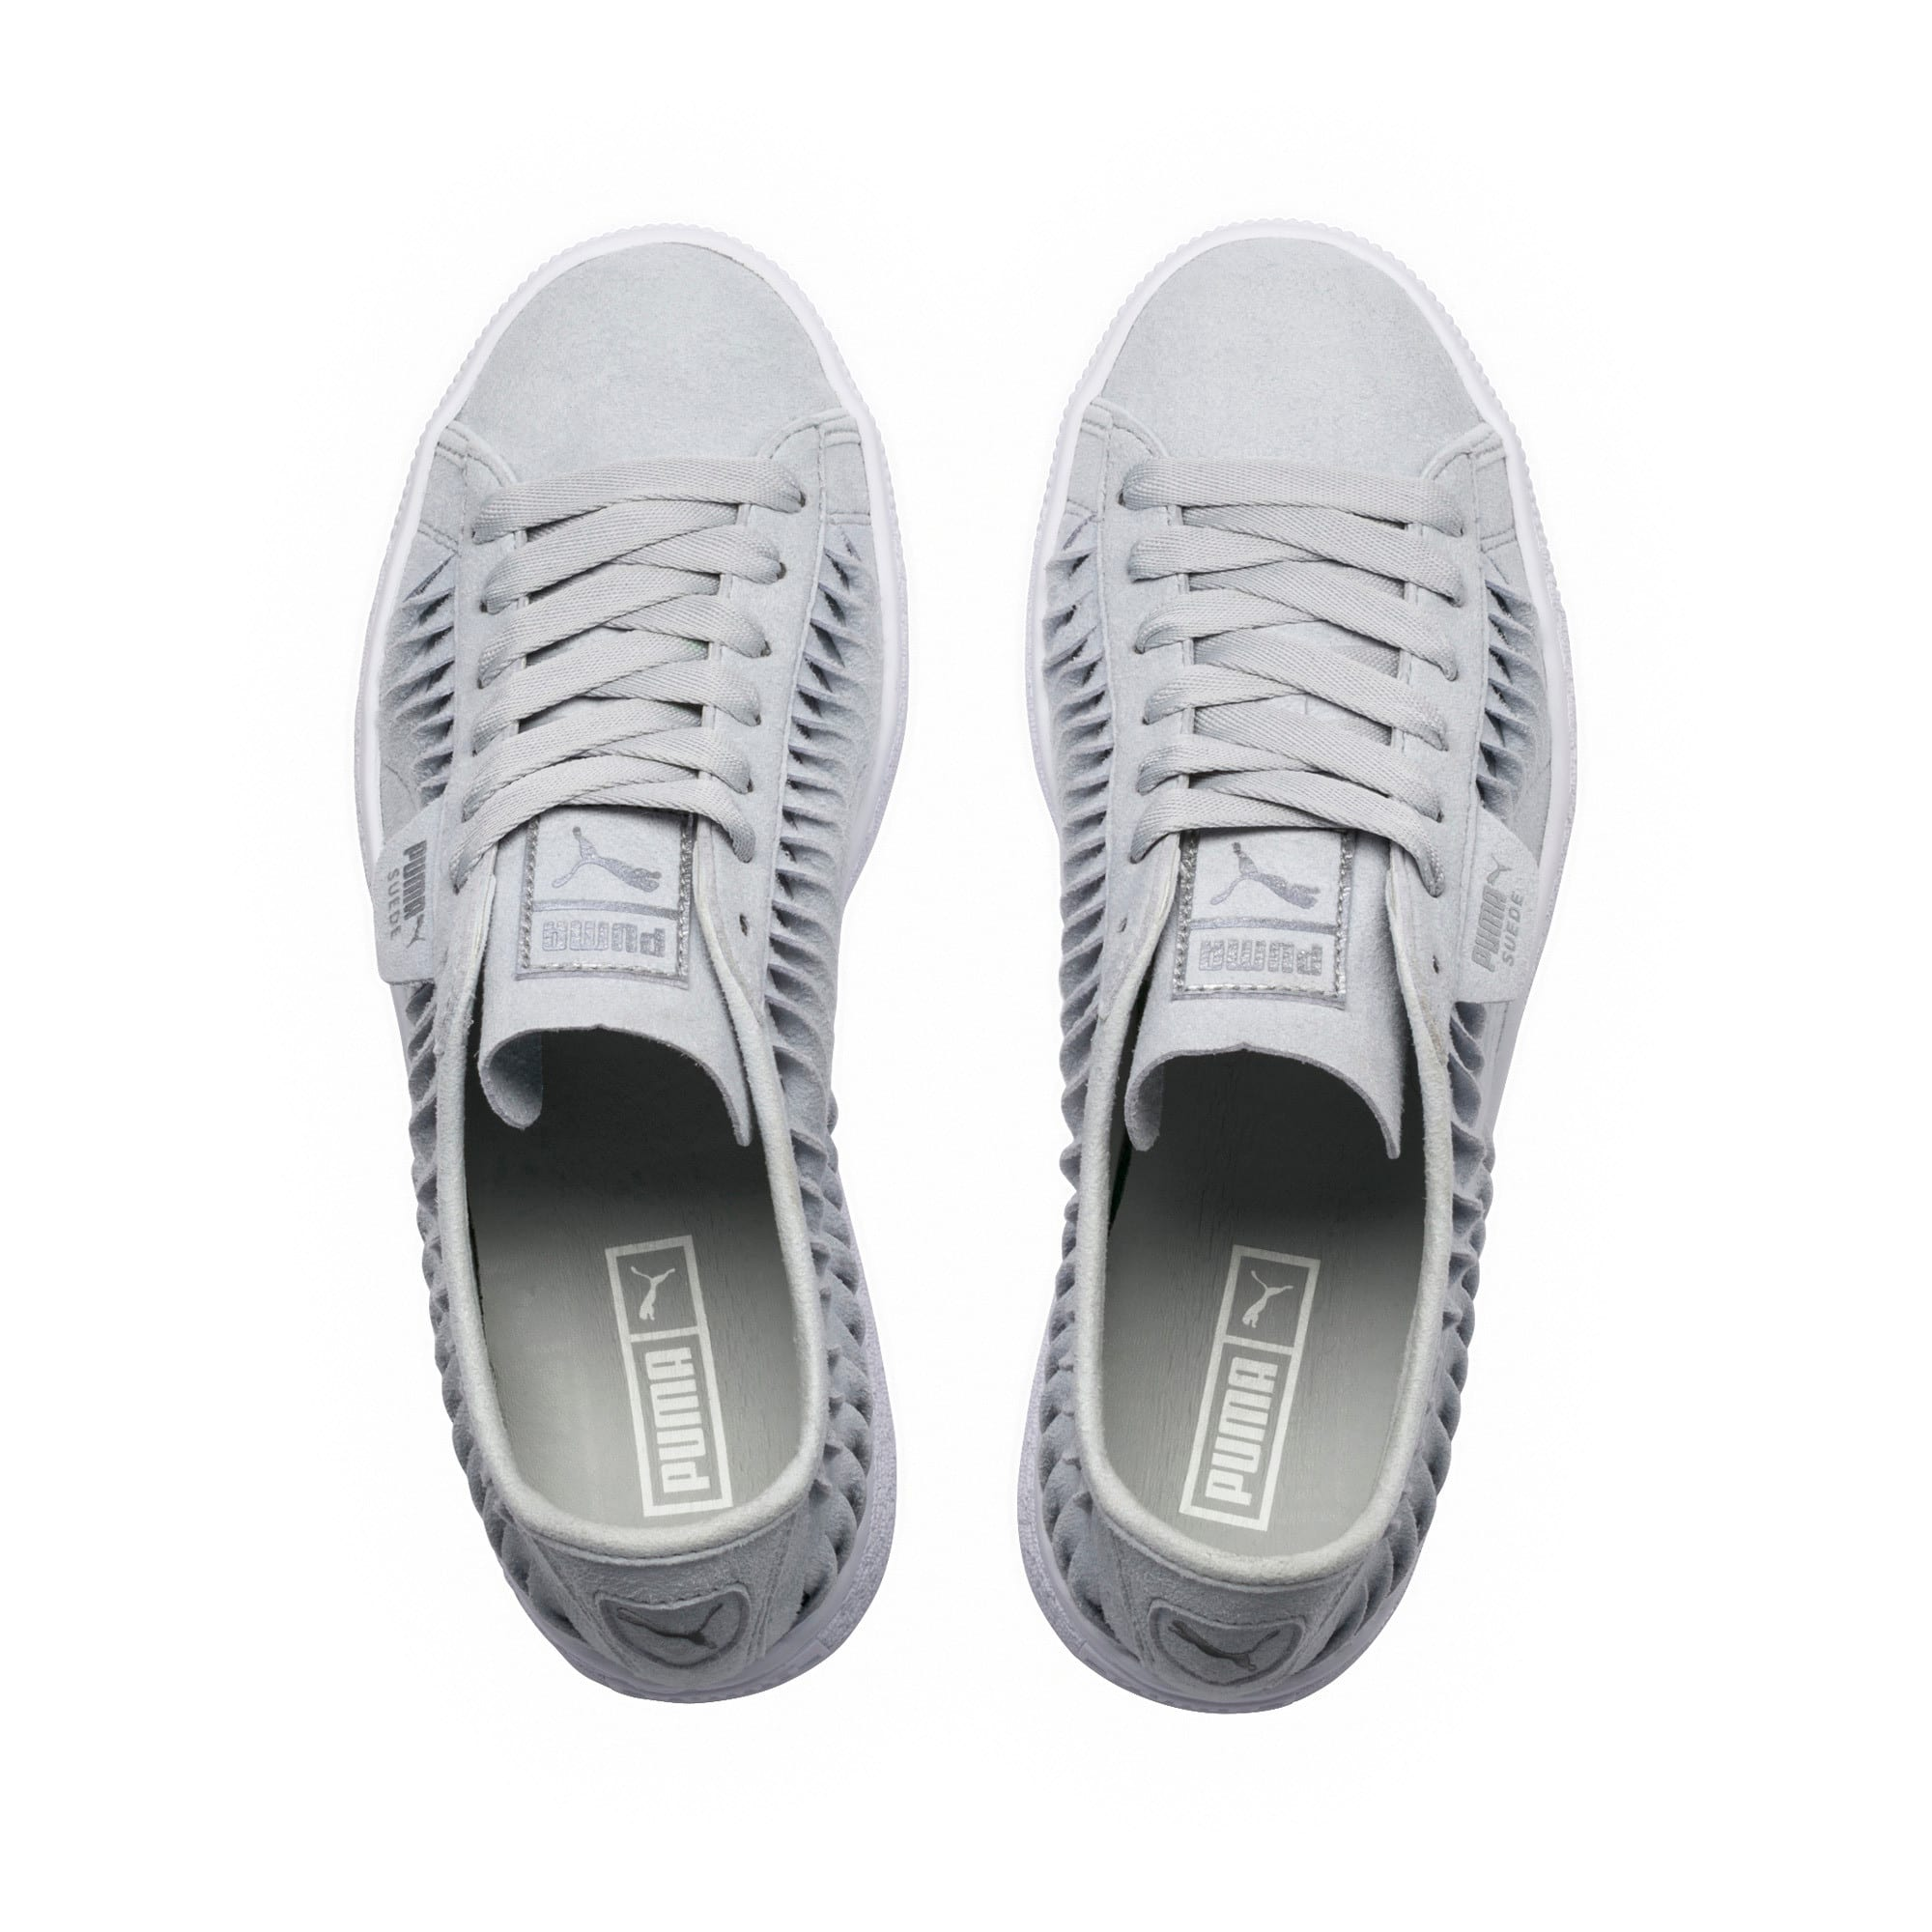 Thumbnail 5 of Suede Metallic Entwine Women's Trainers, Glacier Gray-Silver, medium-IND